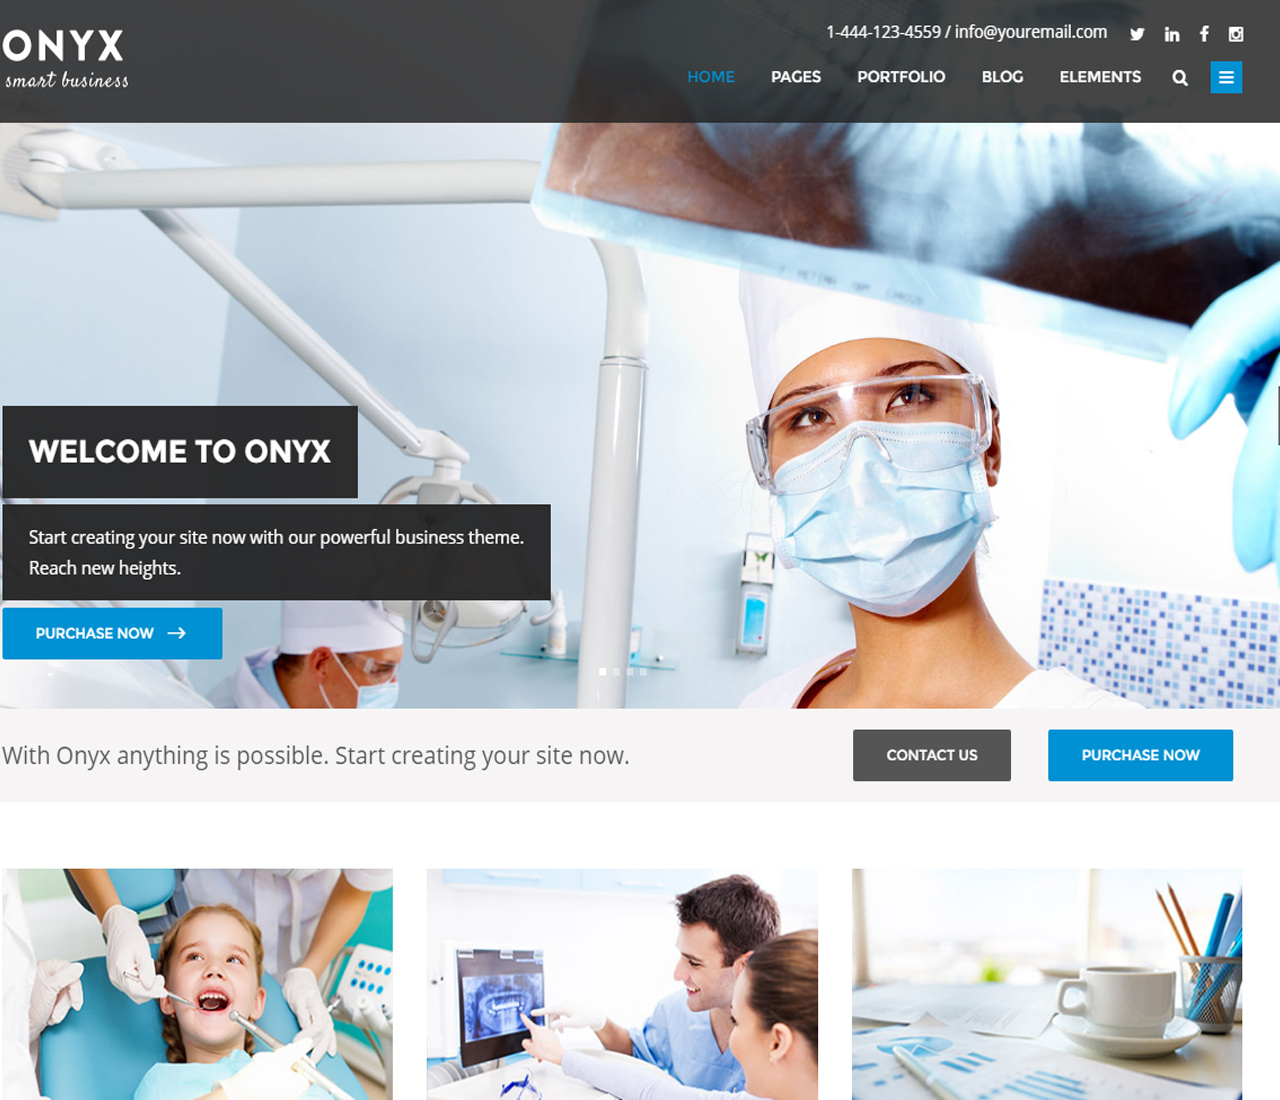 Onyx — A Powerful Multi-Concept Business Theme — 11313269-1